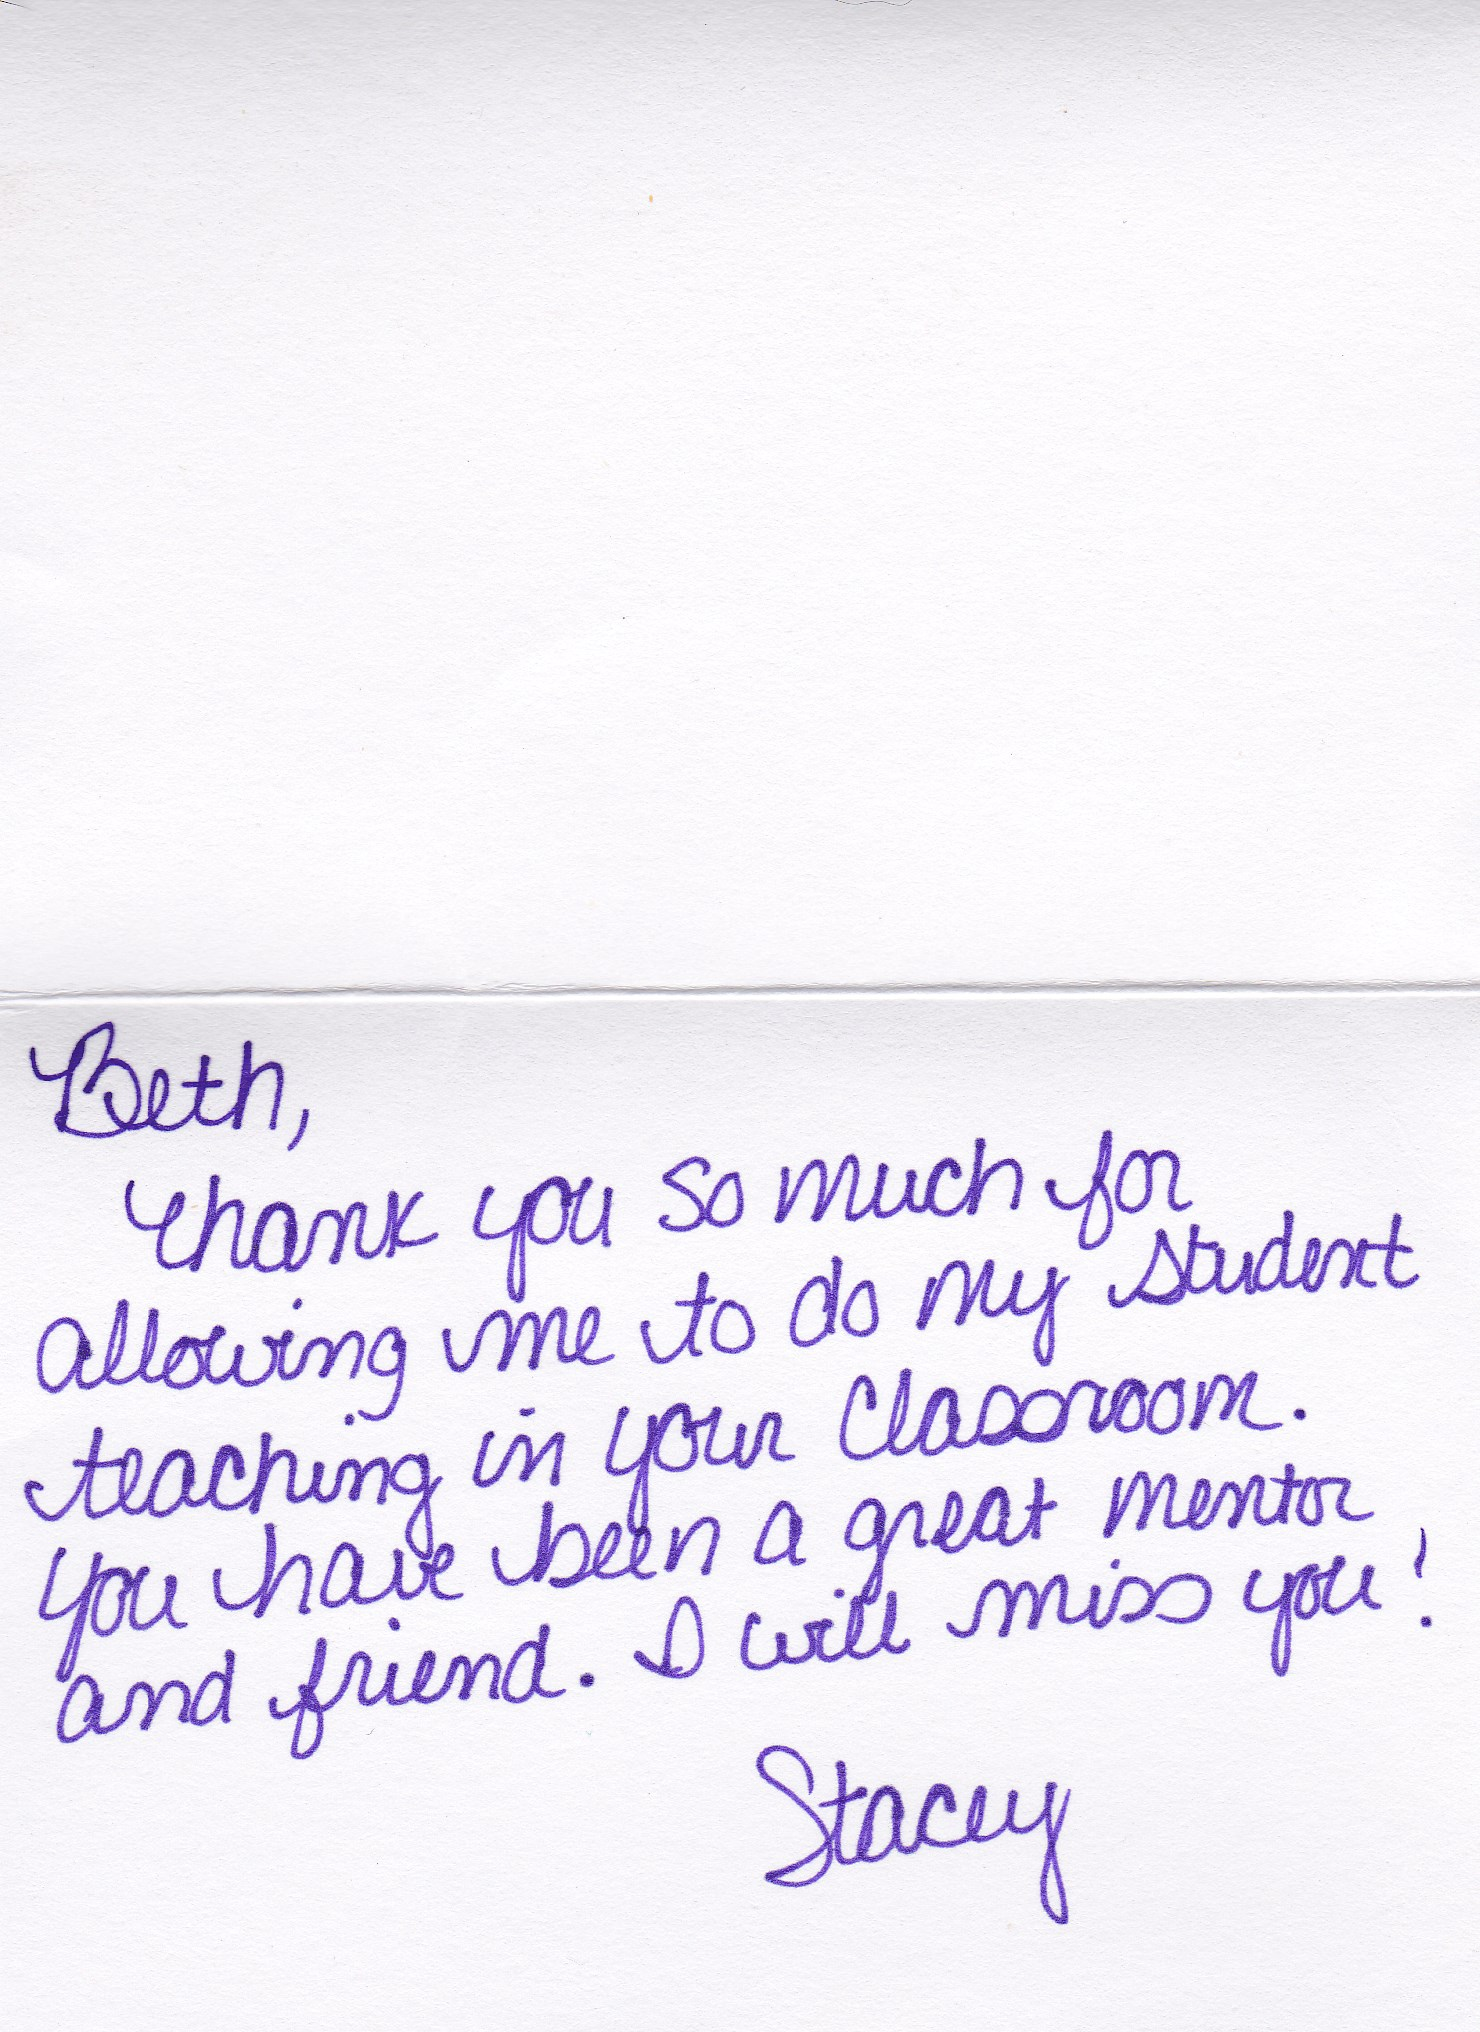 Short Thank You Letter For Teachers From Students  Cover Letter